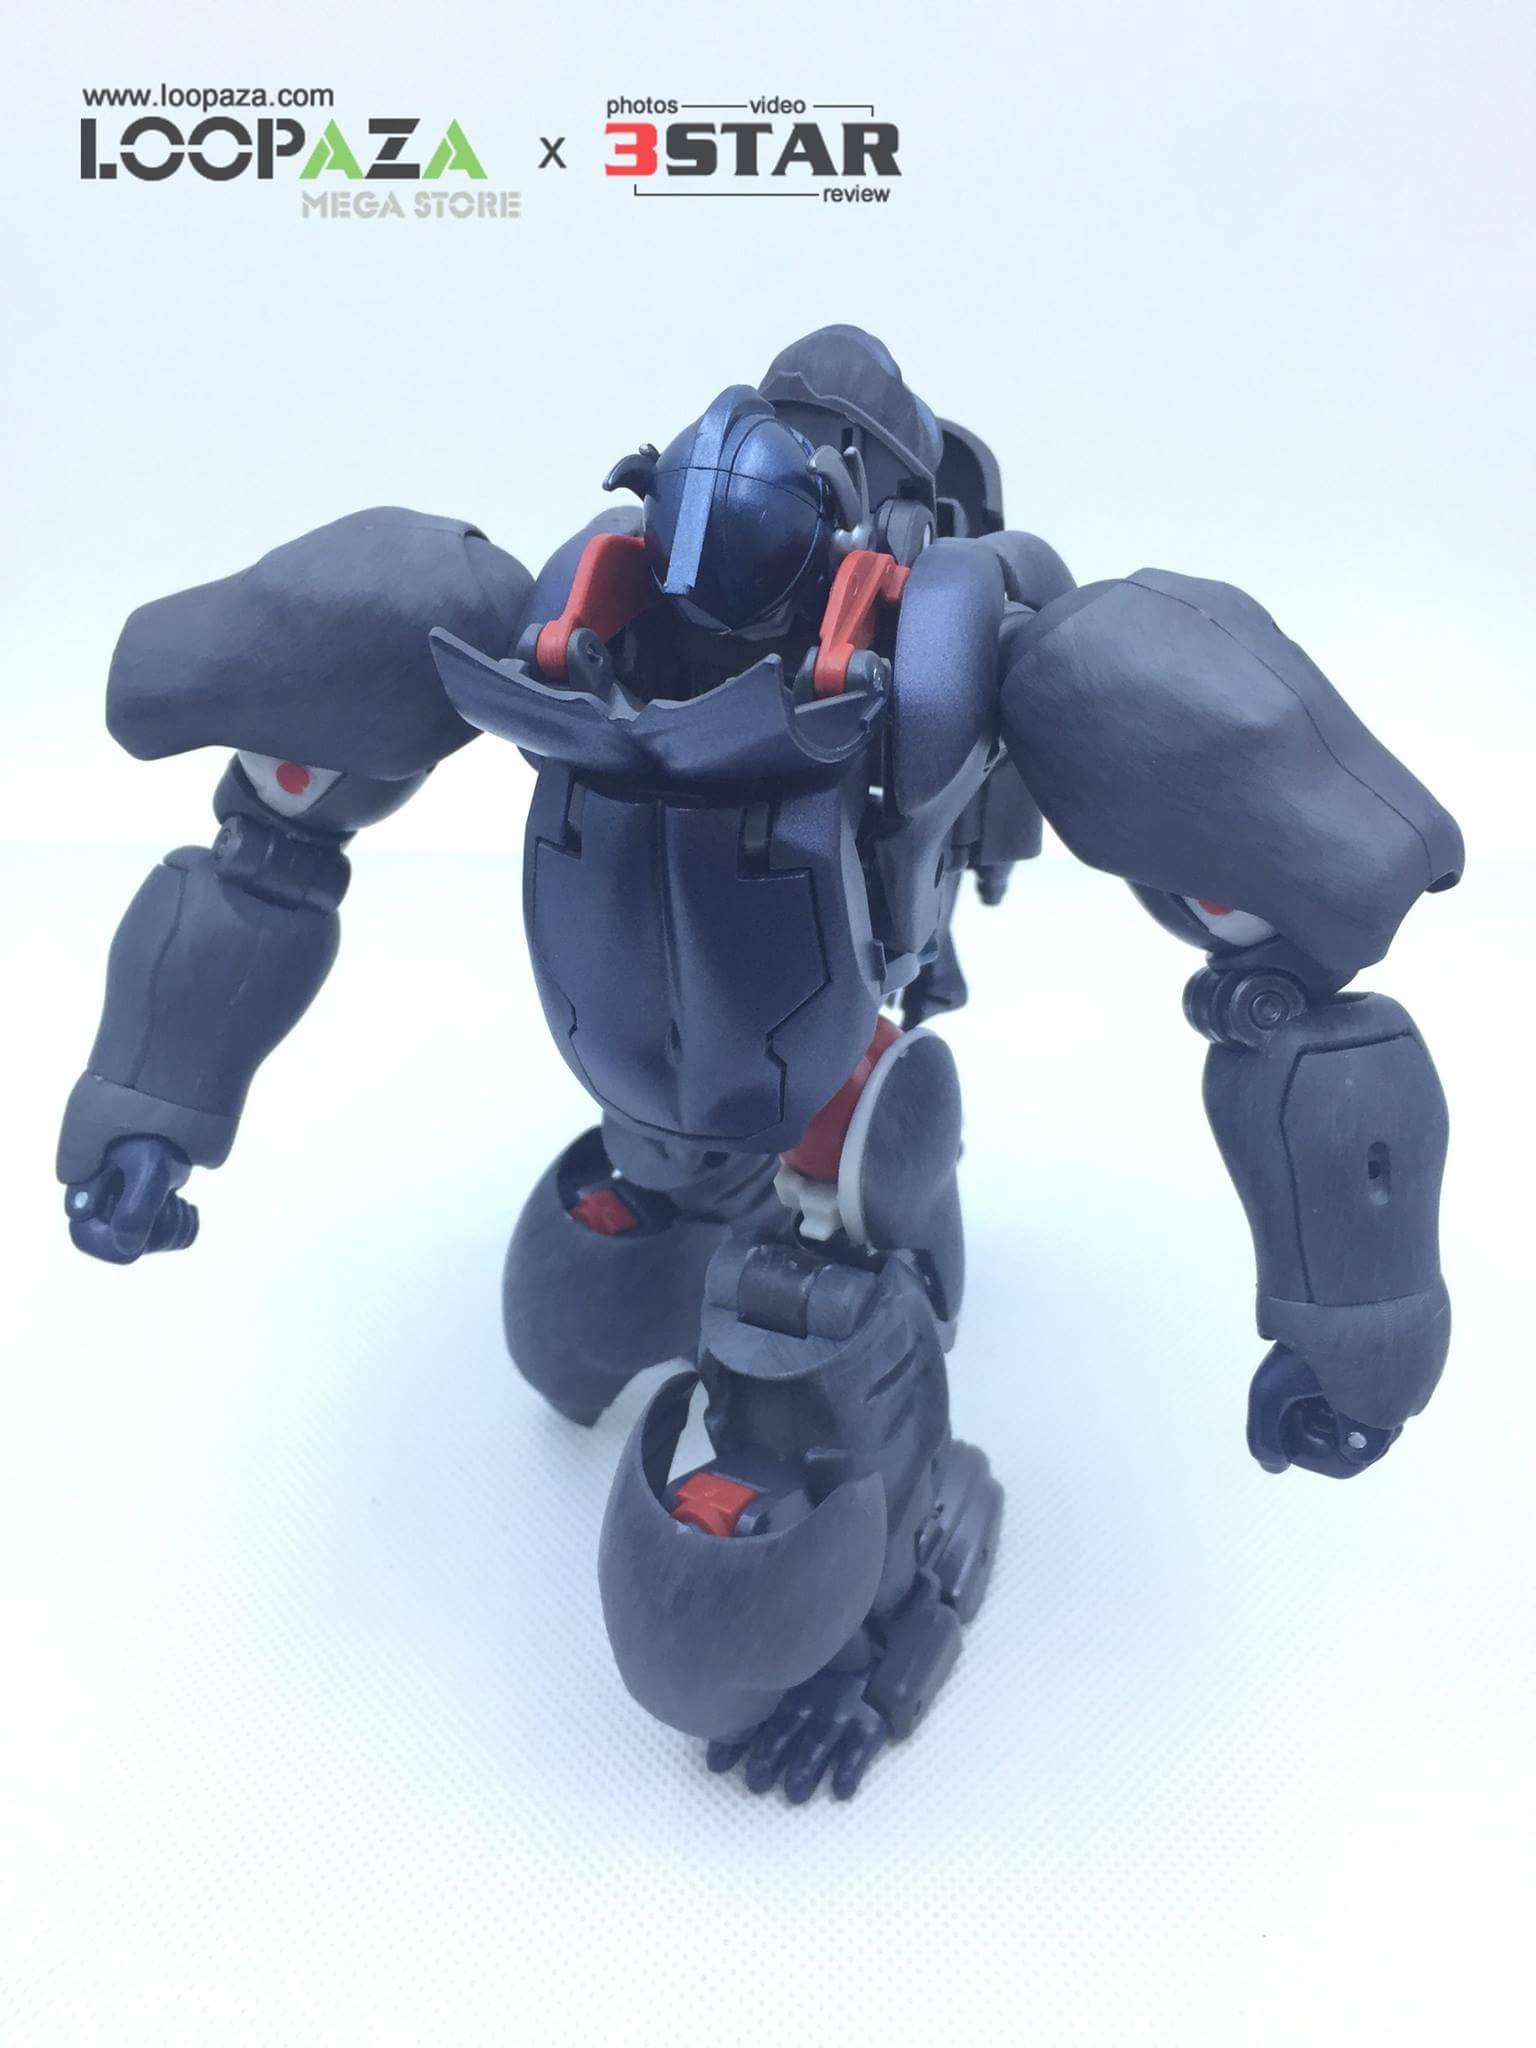 [Masterpiece] MP-32, MP-38 Optimus Primal et MP-38+ Burning Convoy (Beast Wars) - Page 3 ATqqfMNP